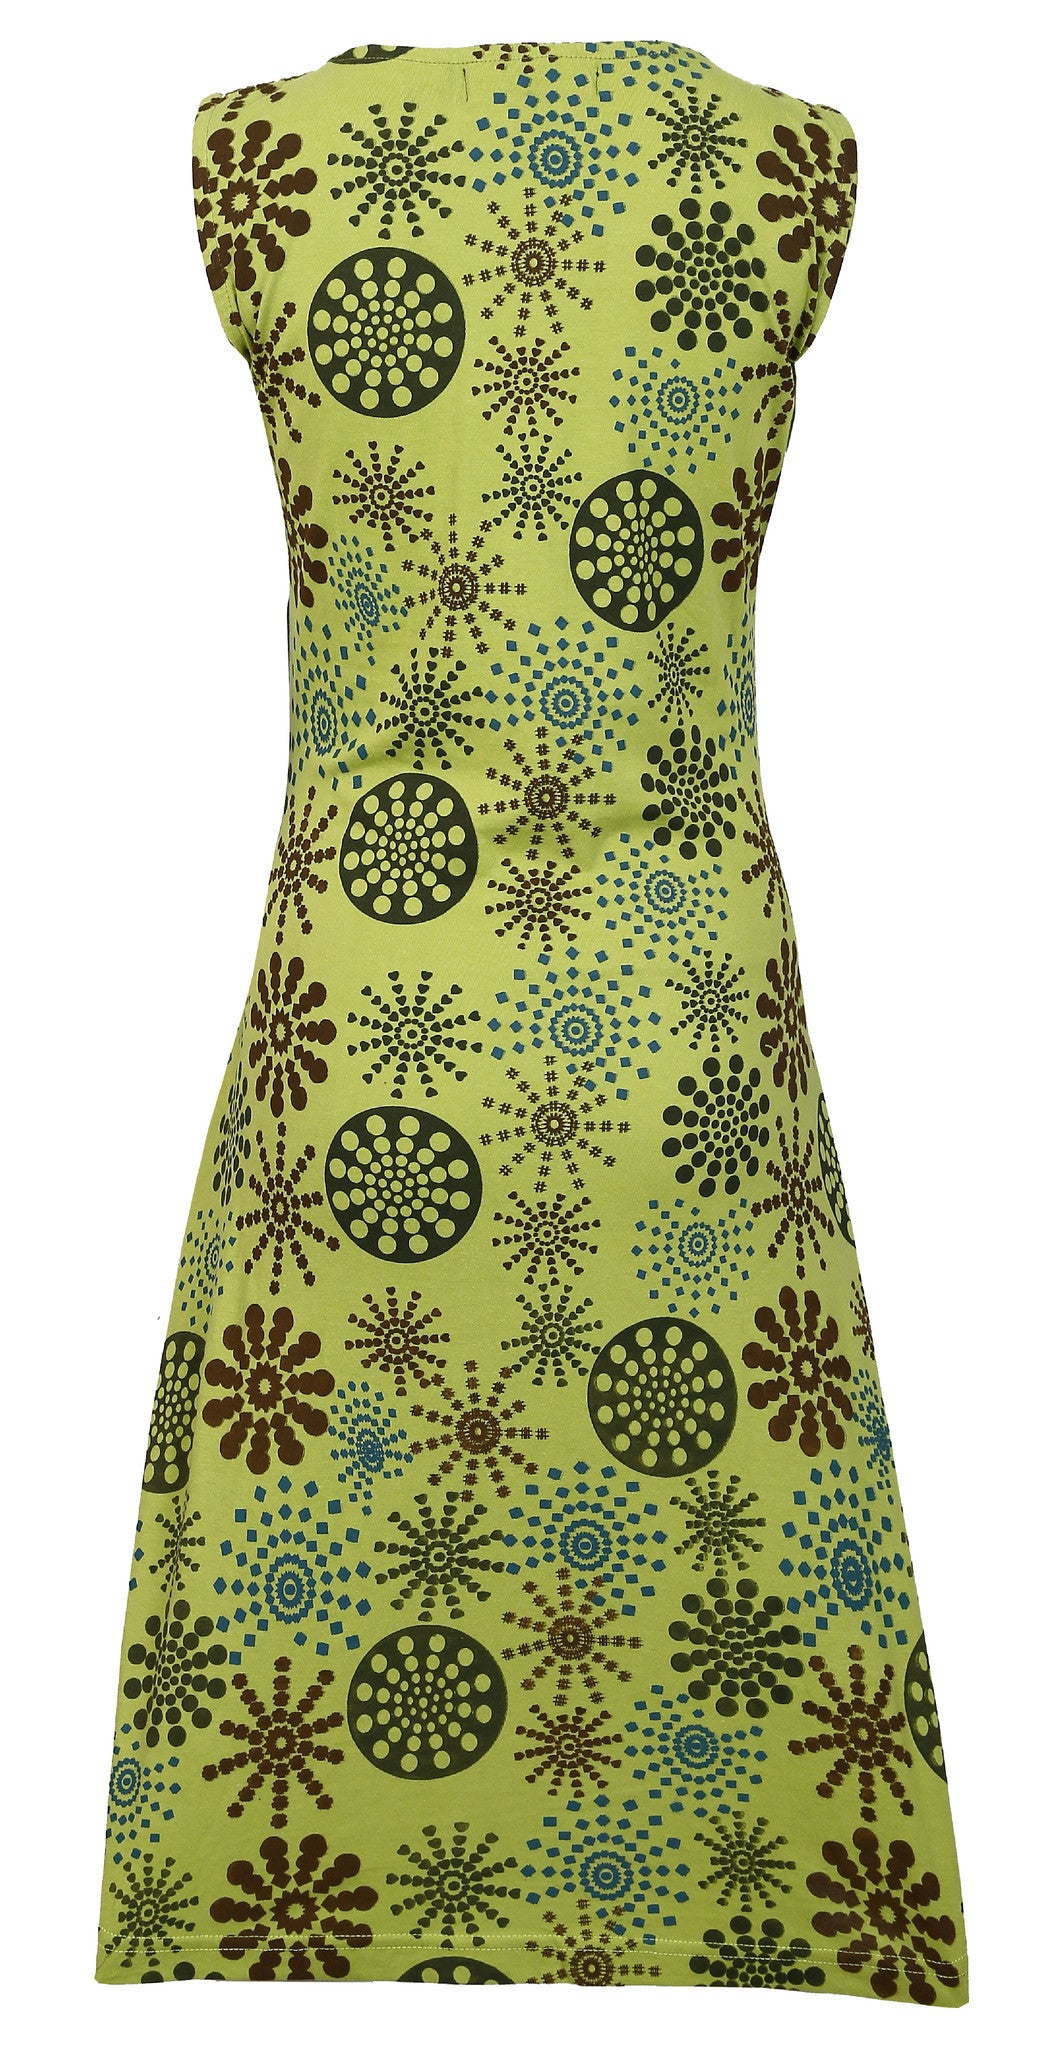 Ladies Summer Sleeveless Dress with flower Pattern Print and Embroidery- SN1379 - Craze Trade Limited